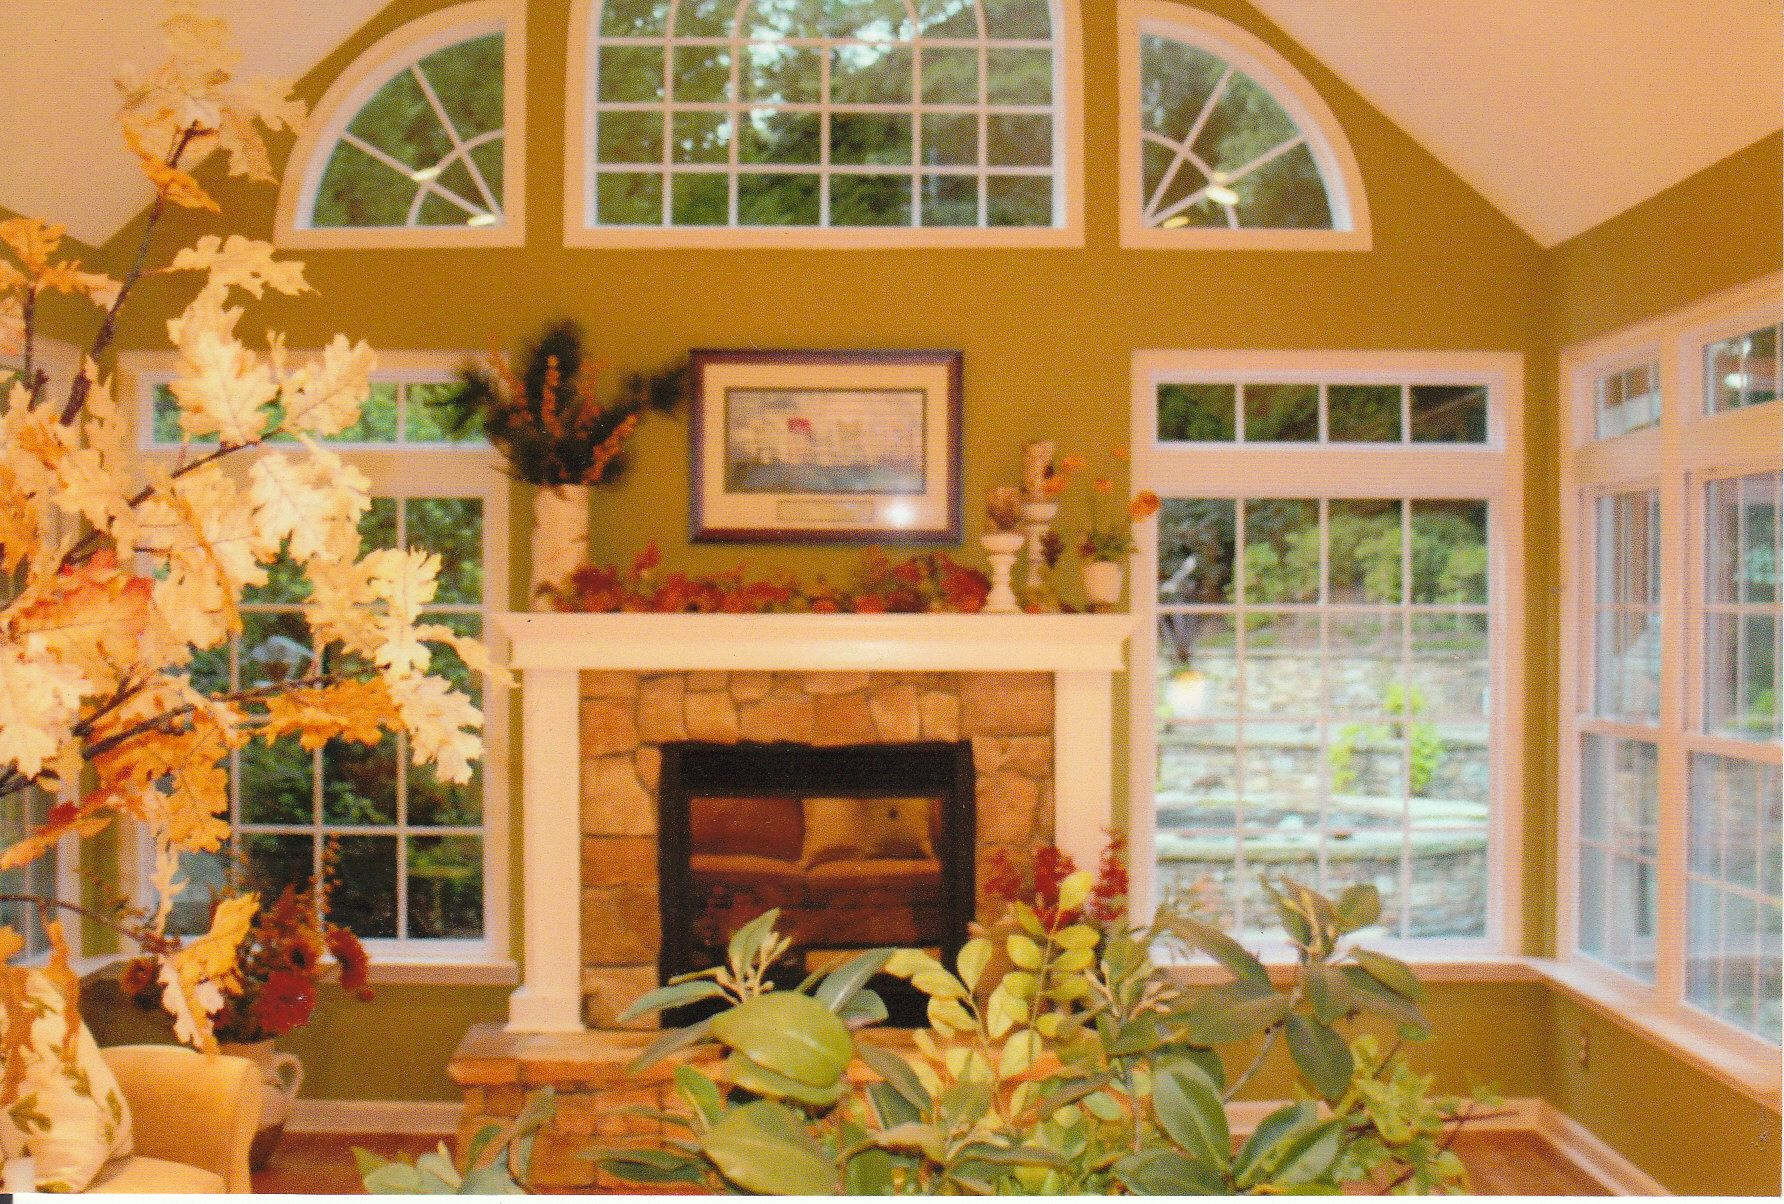 Sunroom With Fireplace Designs Four Season Sunroom With Fireplace Georgia Sunroom Pinterest